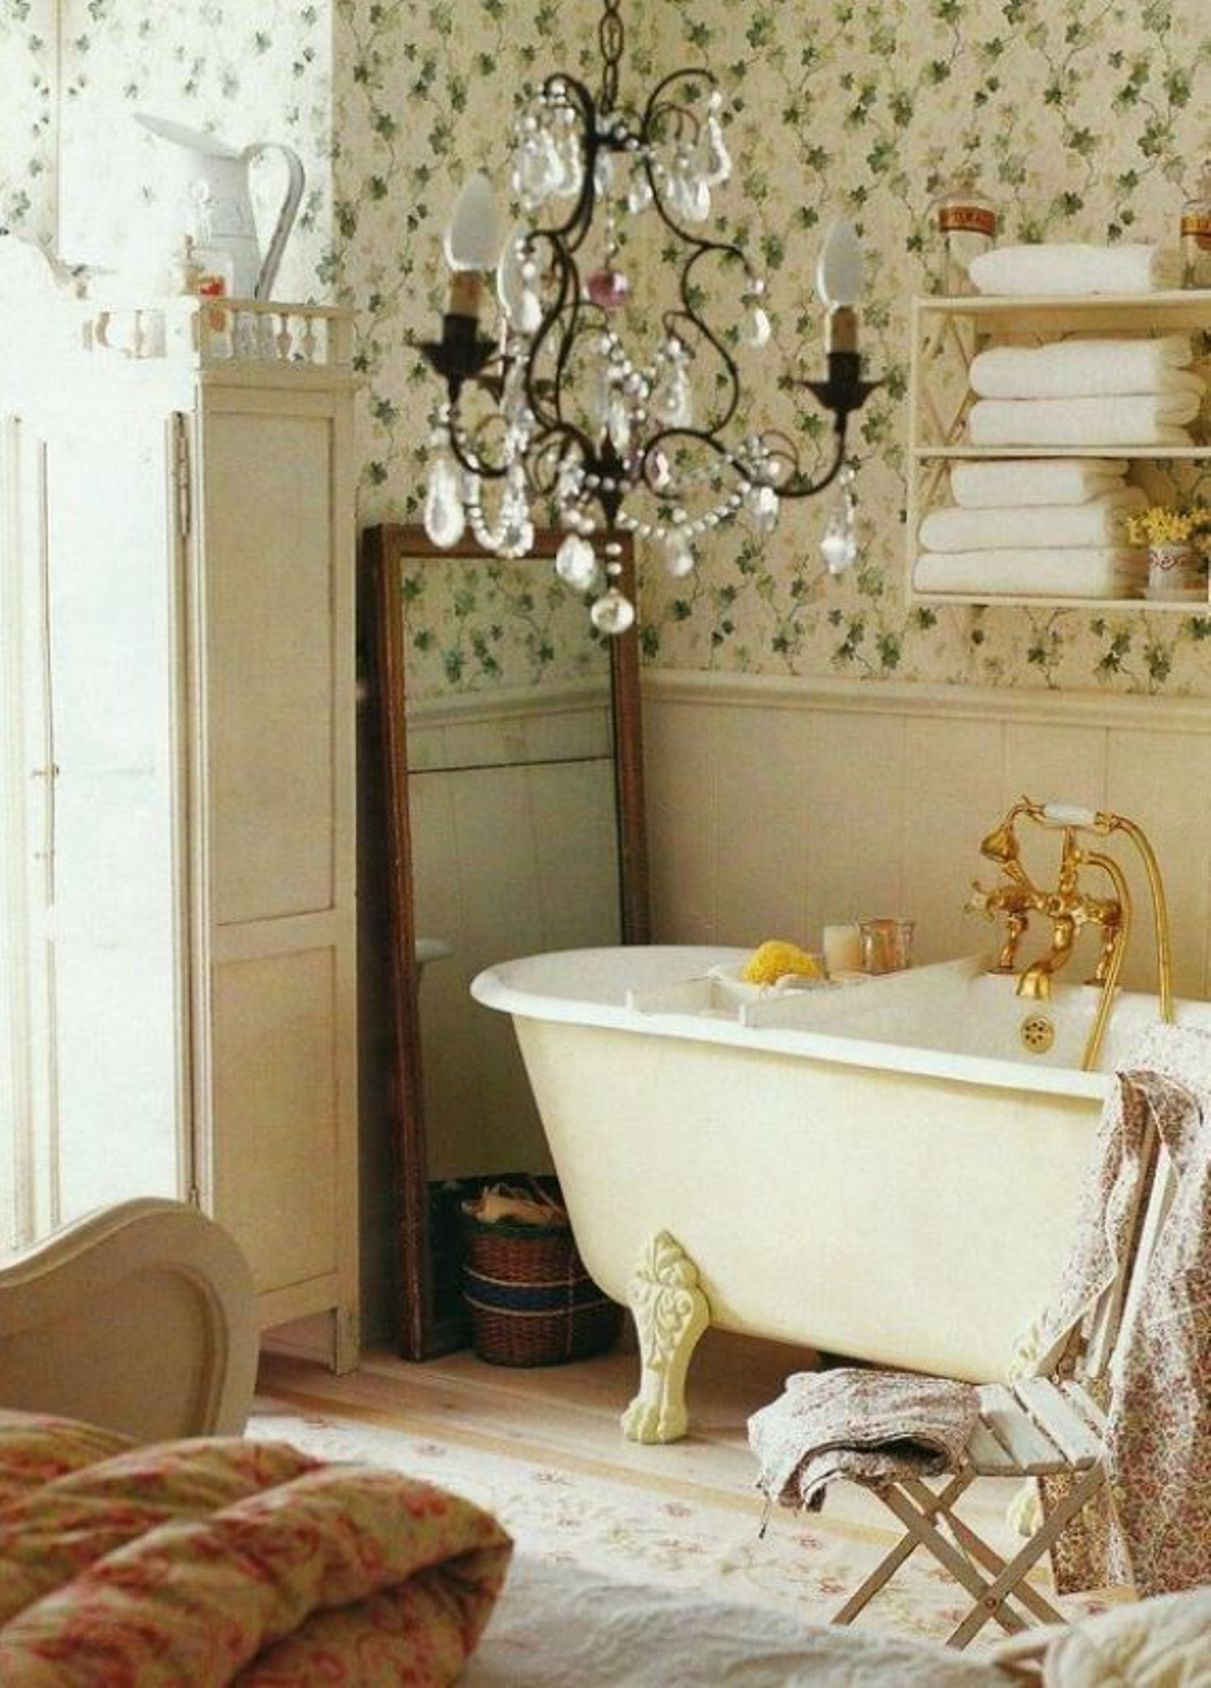 30 shabby chic bathroom design ideas to get inspired for 30 bathroom ideas